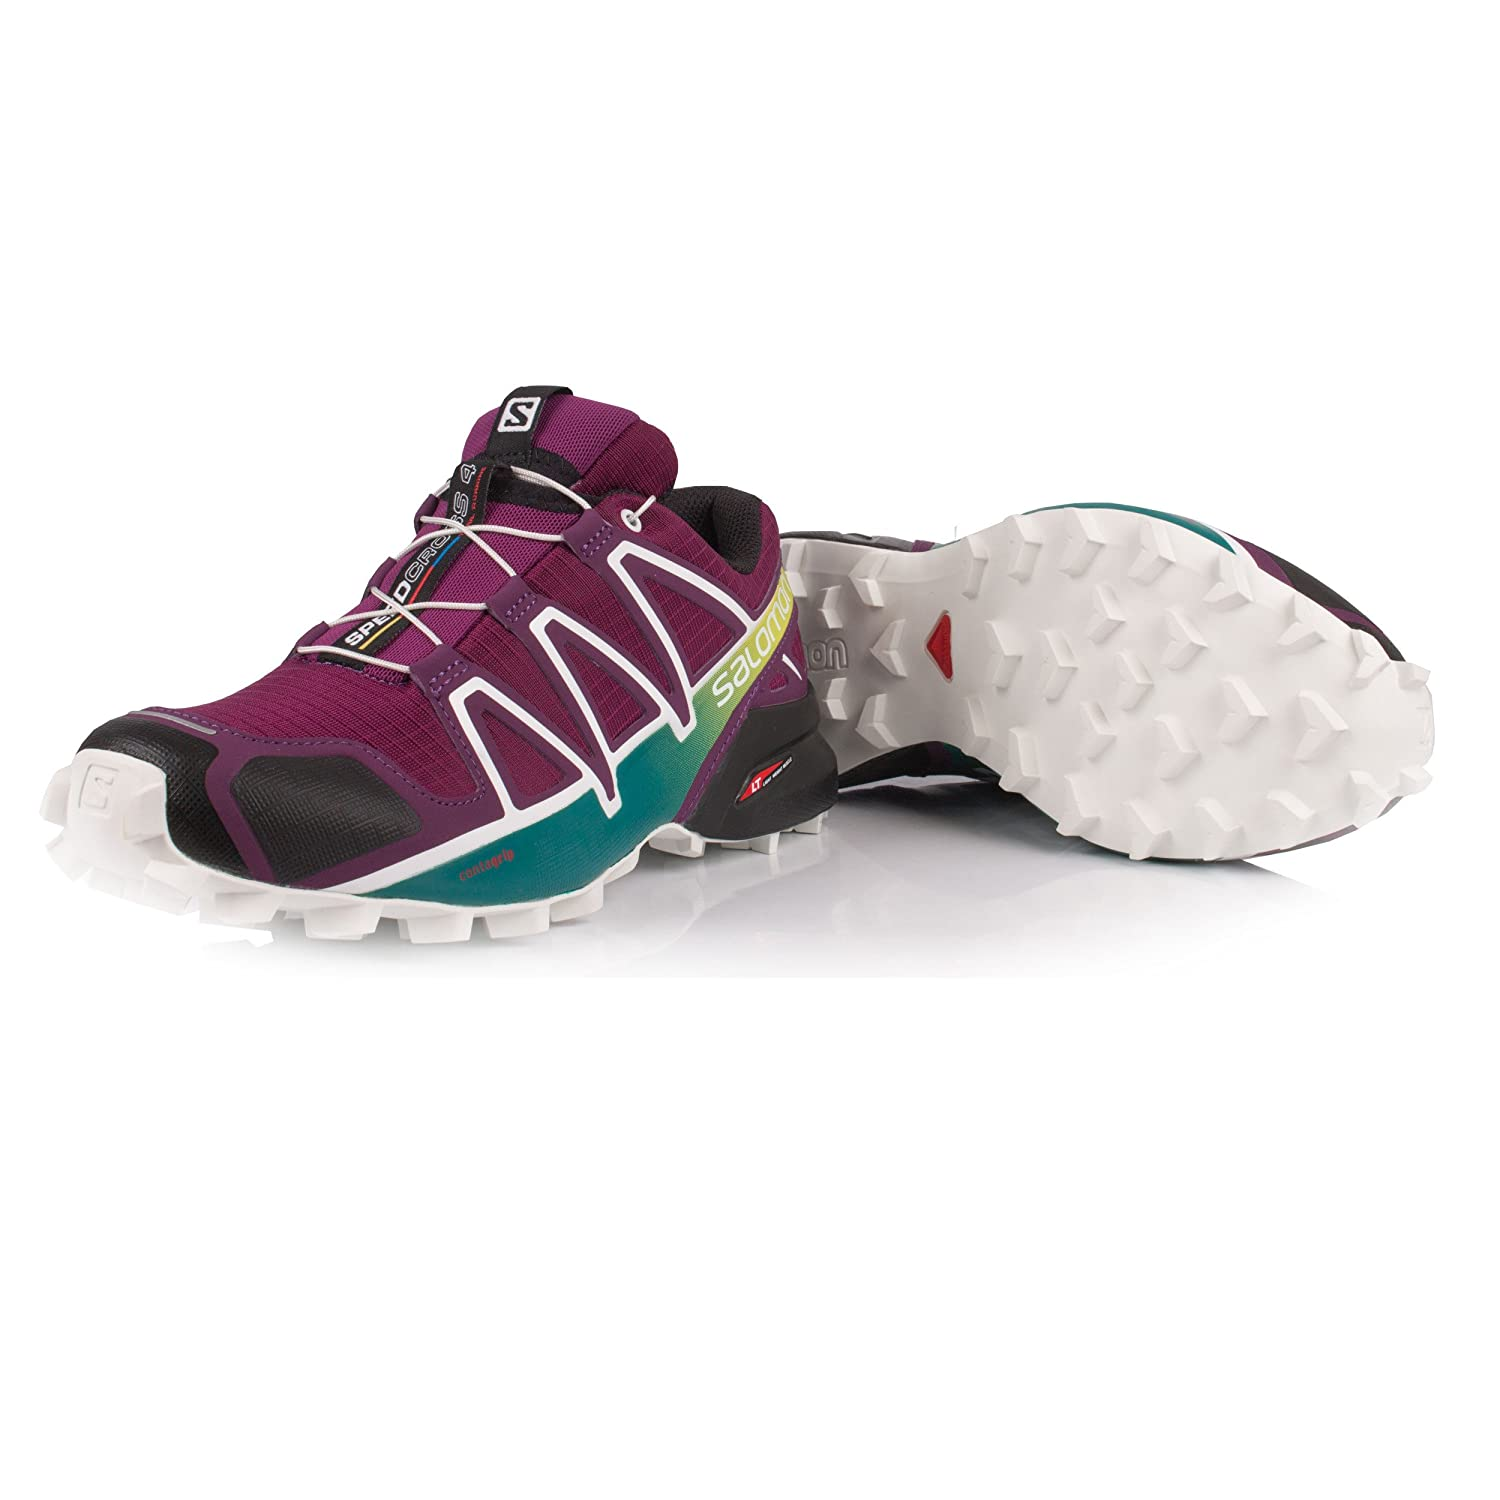 Salomon Women's Speedcross 4 W Trail Runner B077BKVM94 10 B(M) US|Dark Purple/White/Deep Lake